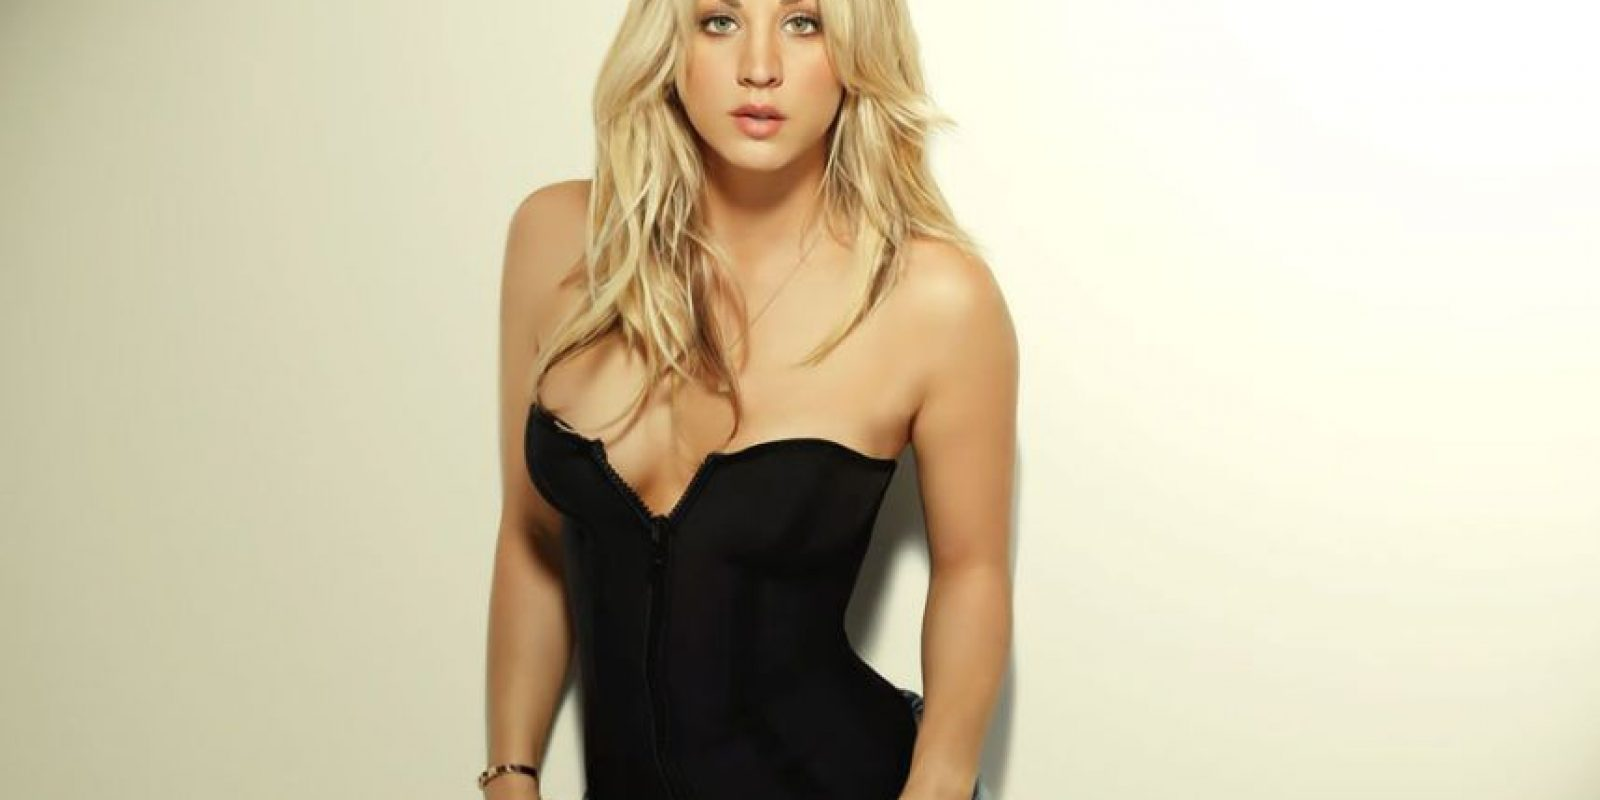 Kaley Cuoco Foto: Agencias